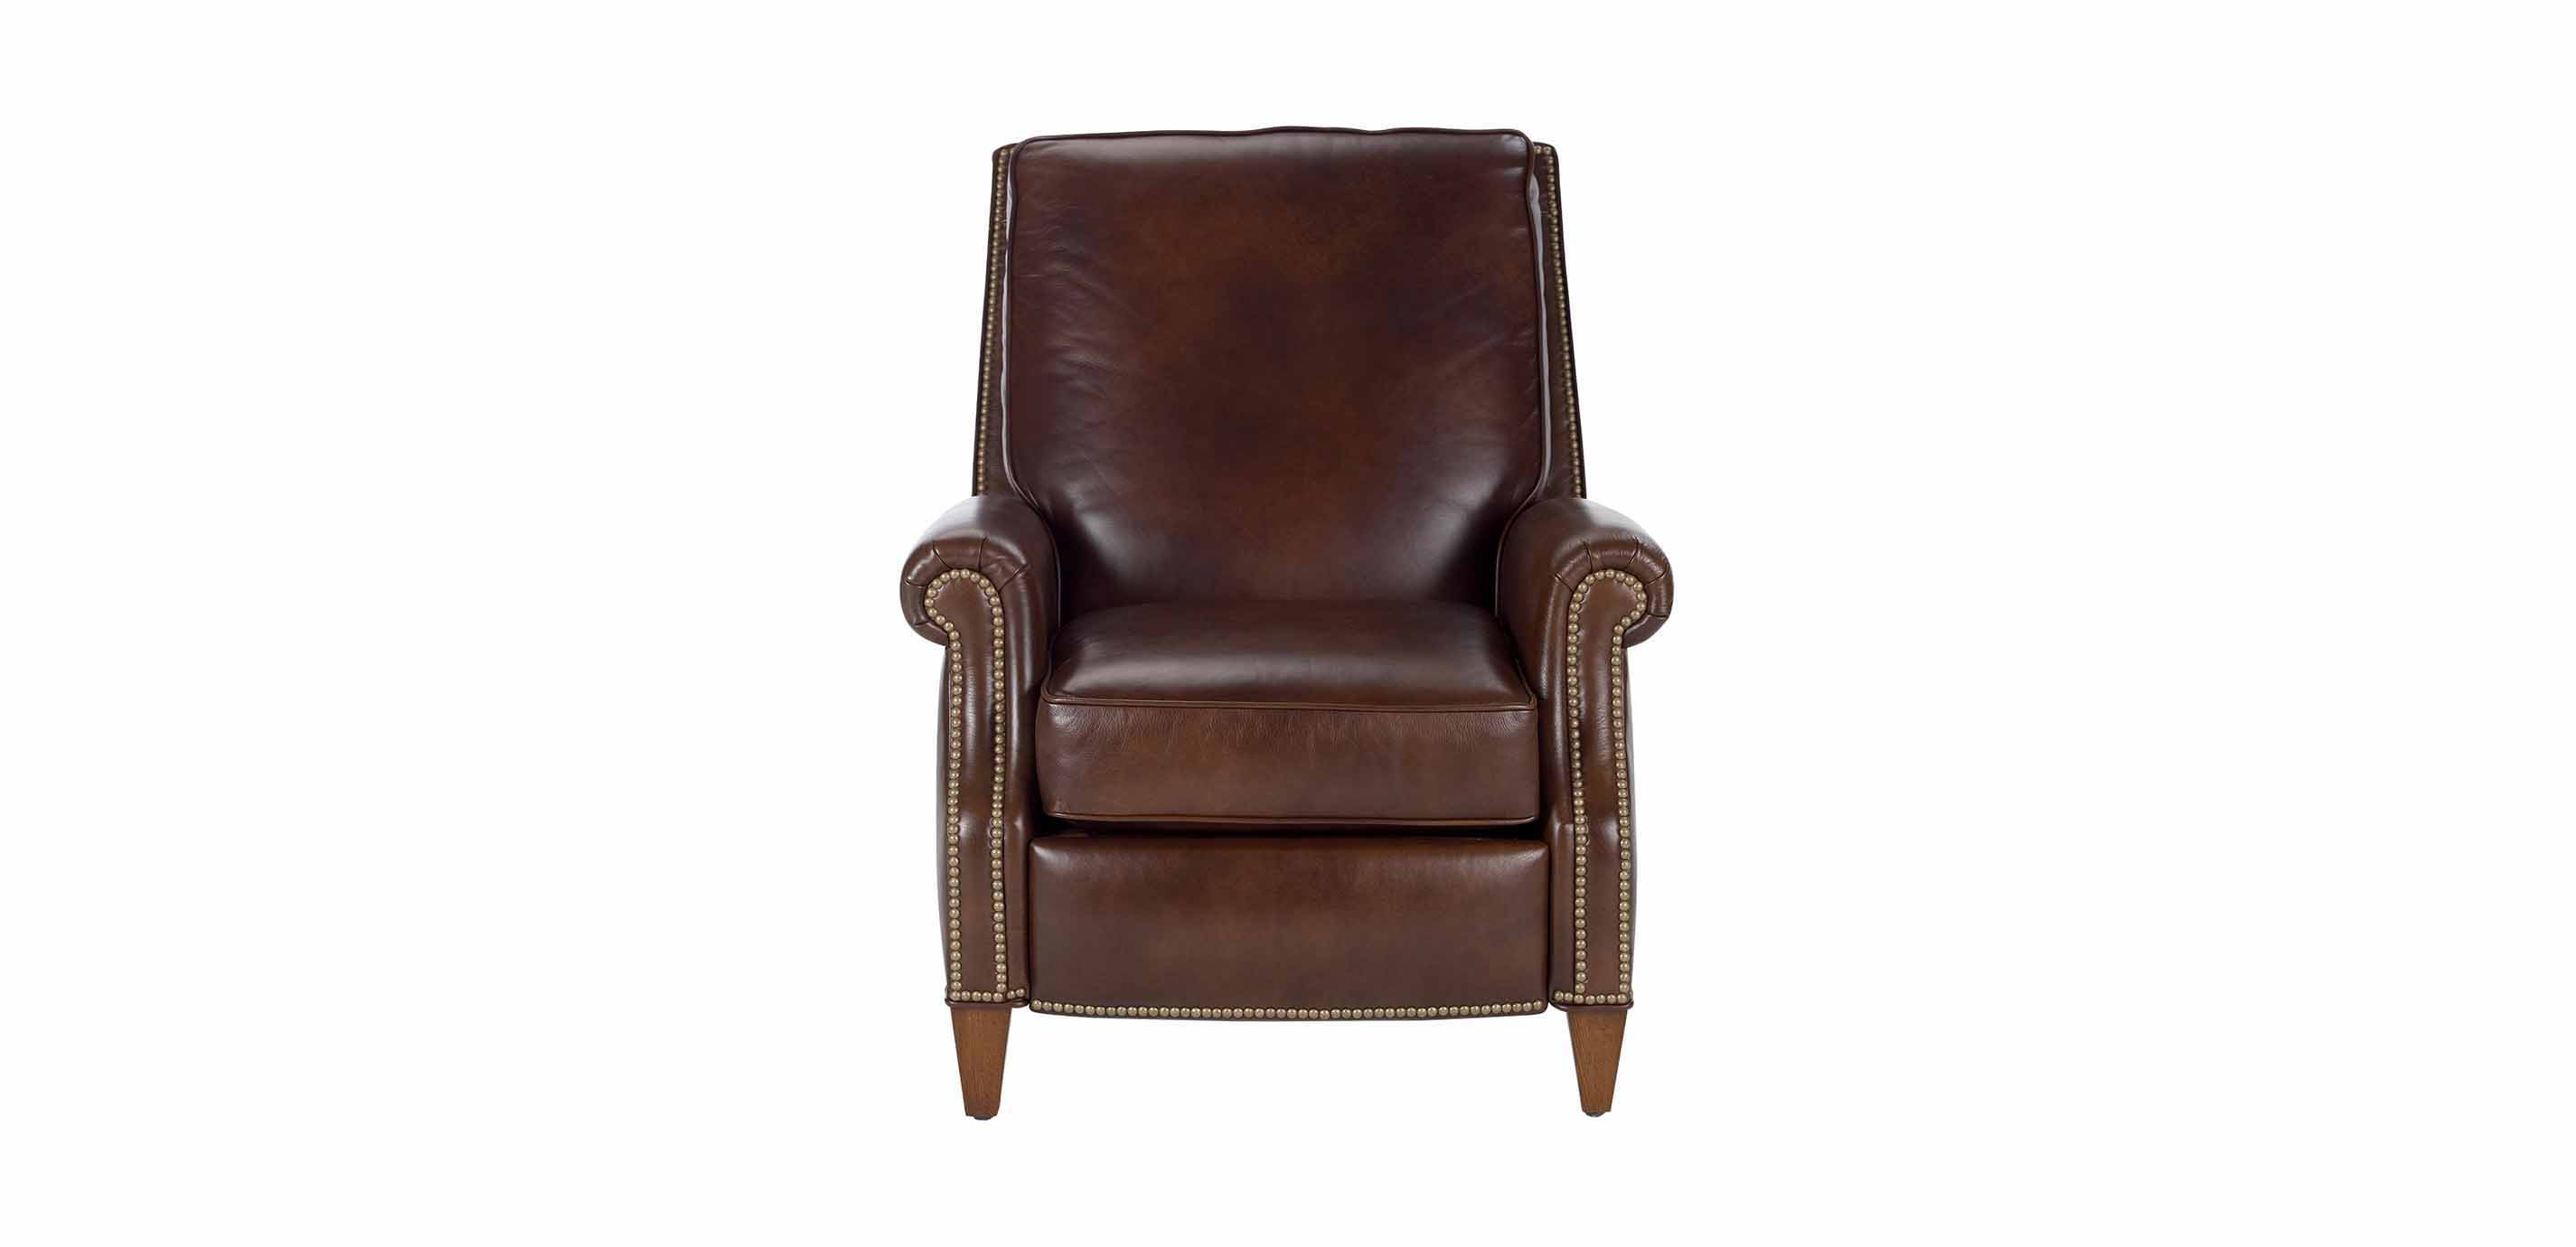 ethan allen leather chairs high for sale colburn recliner omni brown custom quick ship